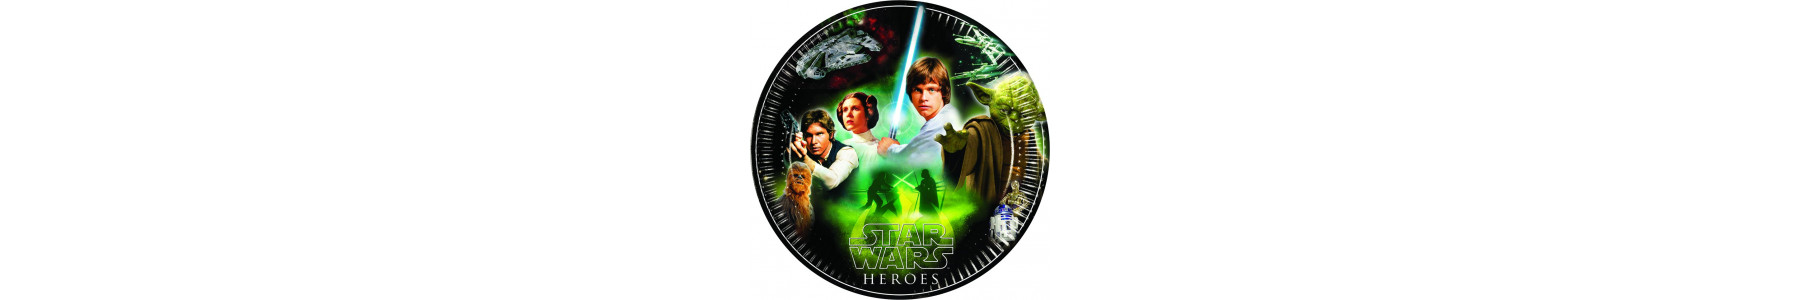 Star Wars and Heroes